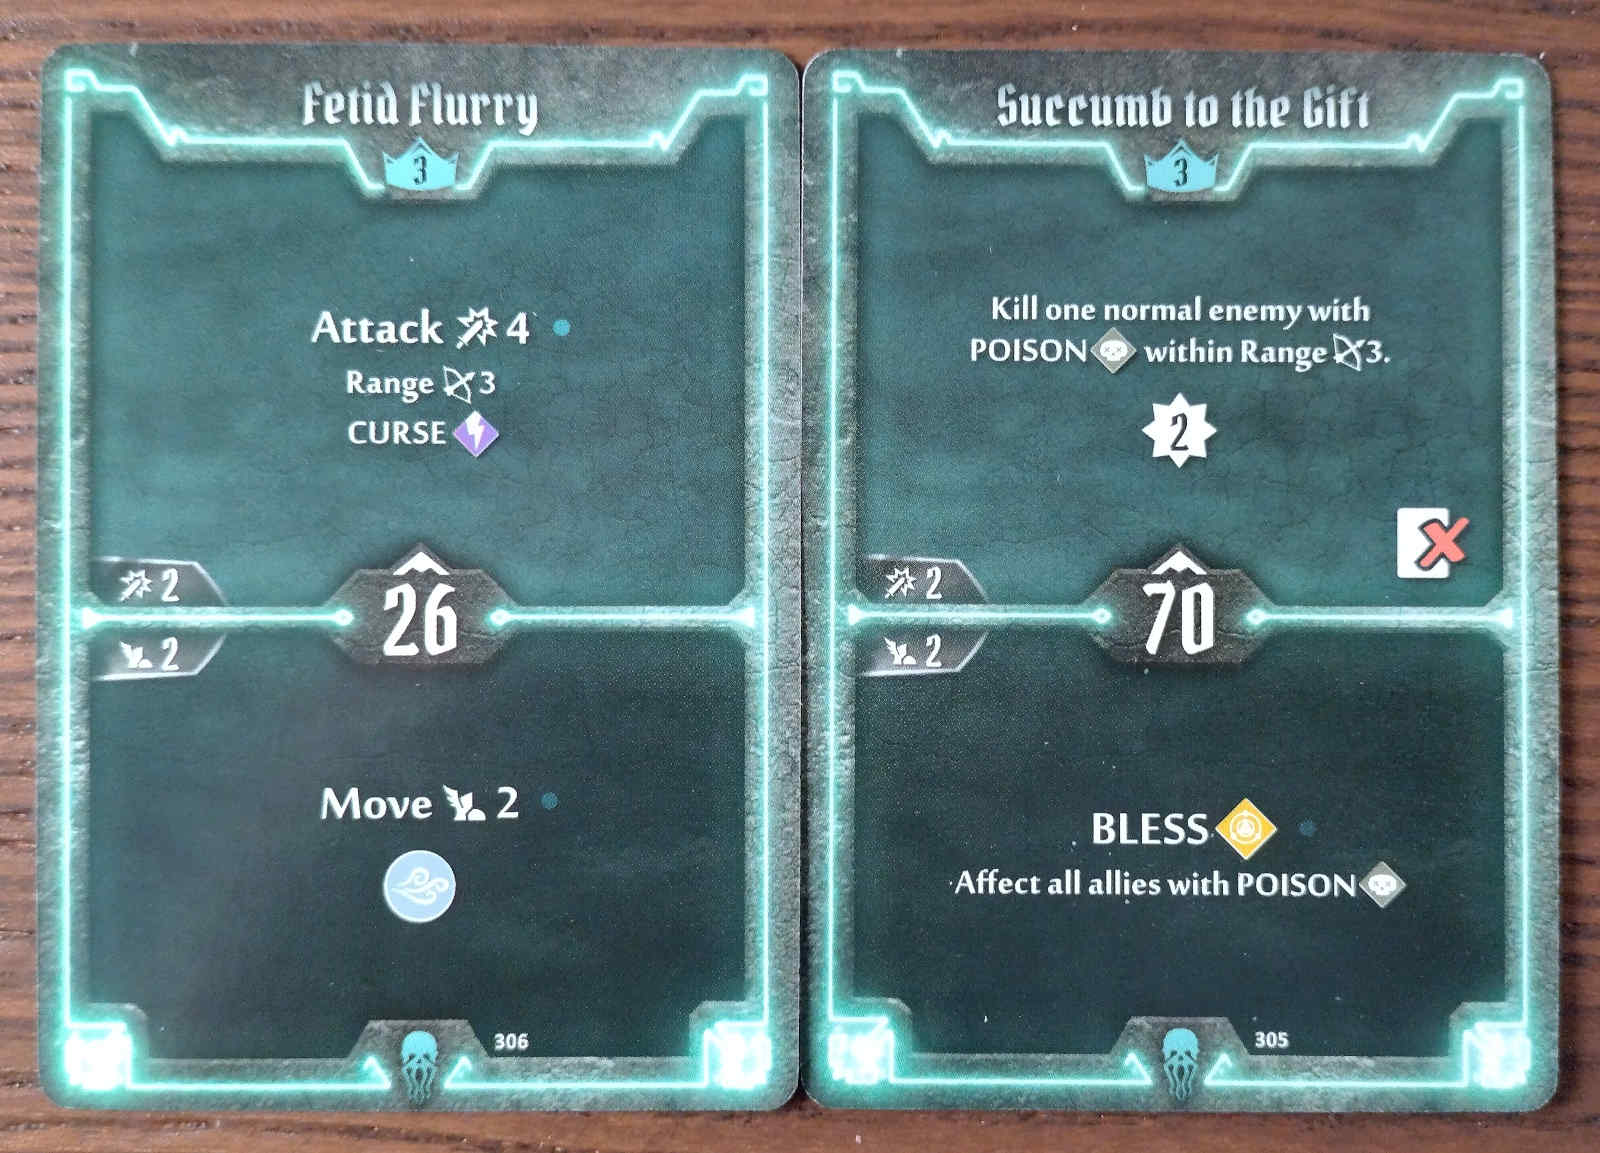 Level 3 Plagueherald cards - Fetid Flurry and Succumb to the Gift